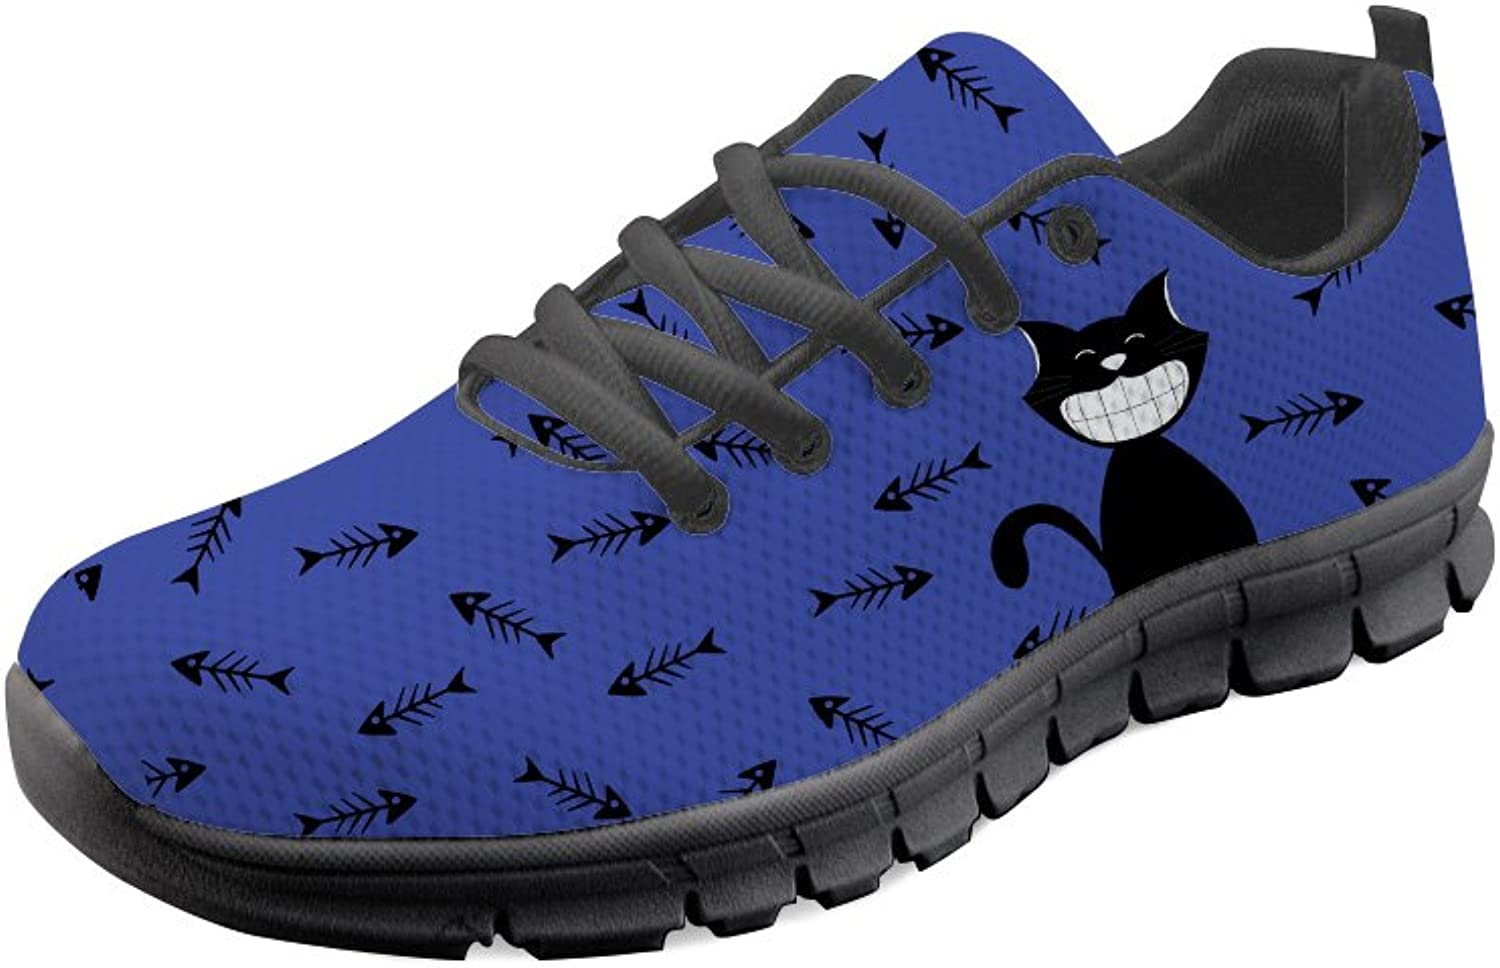 Freewander Casual Comfort Unisex Sneakers Breathable Sport shoes